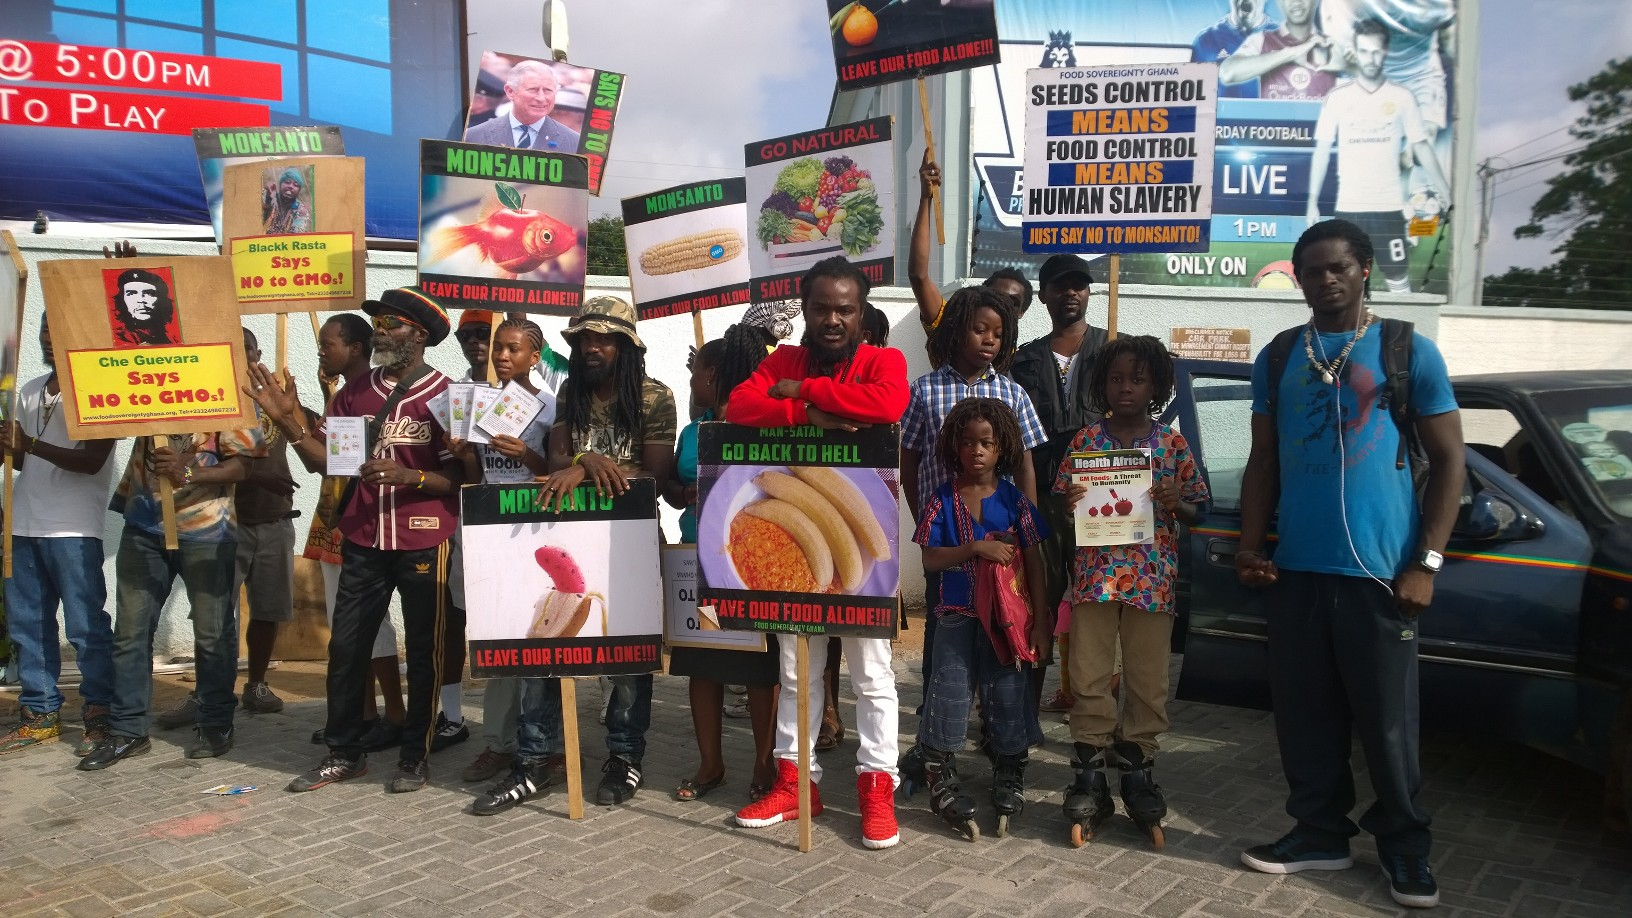 March Against Monsanto ACCRA, Sat, May 21, 2016